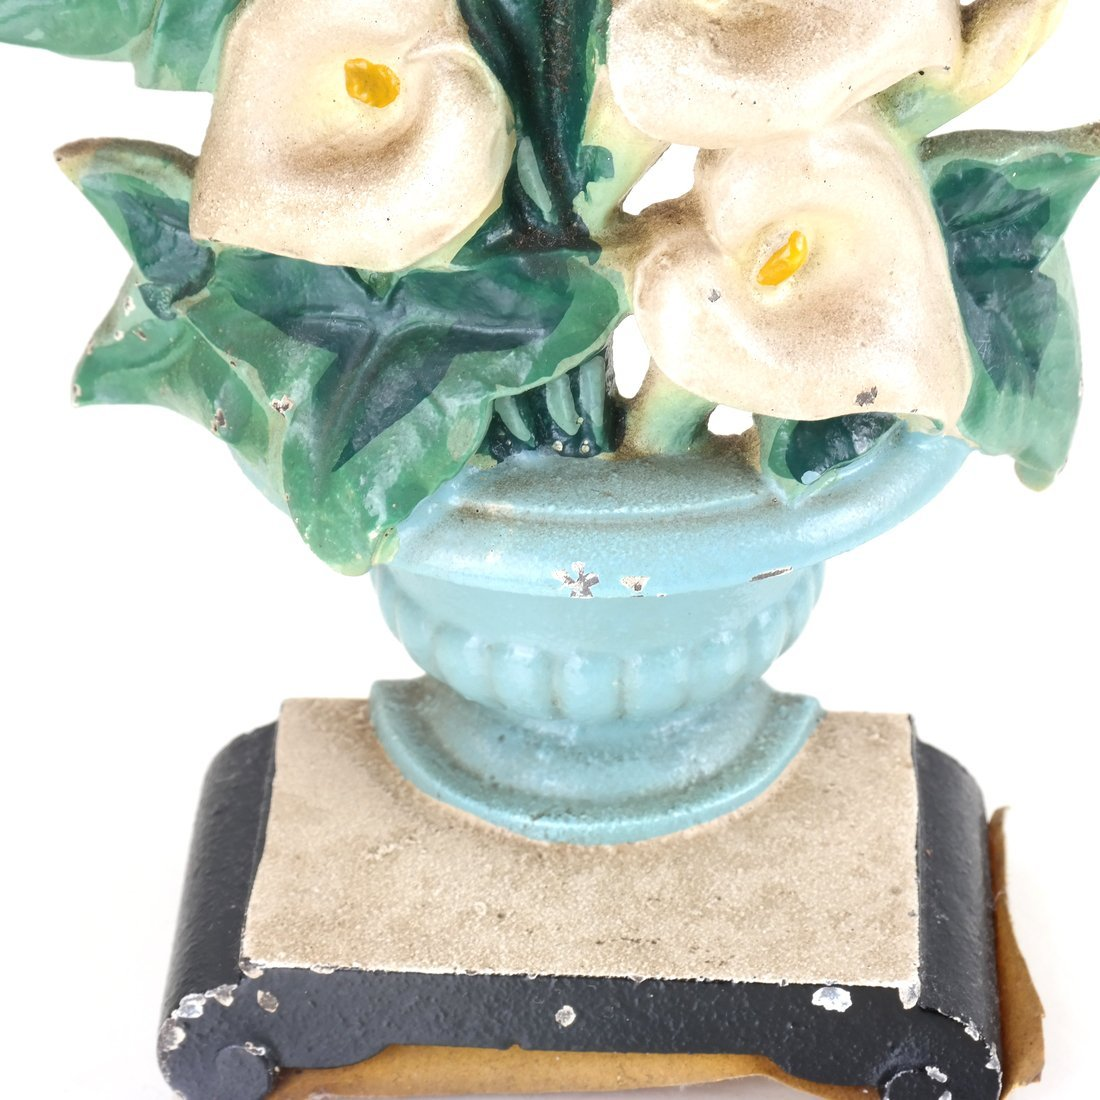 Two Identical Cast Iron Lilies in Urns Doorstops - 2